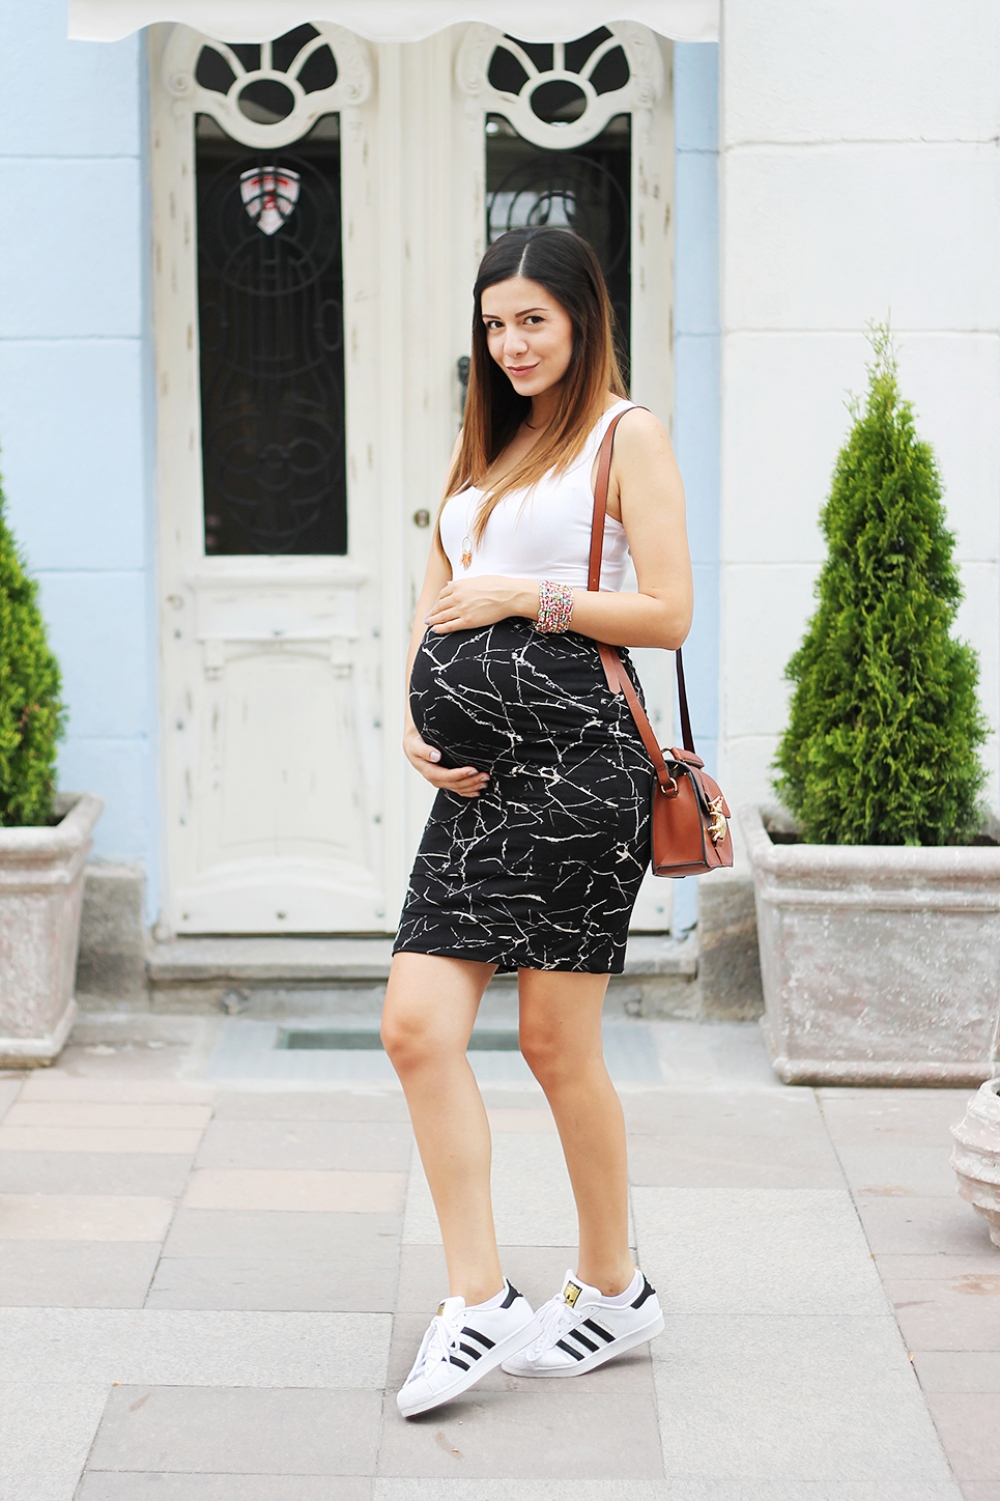 Pregnancy outfit: high-waisted skirt + adidas superstar / 8th month